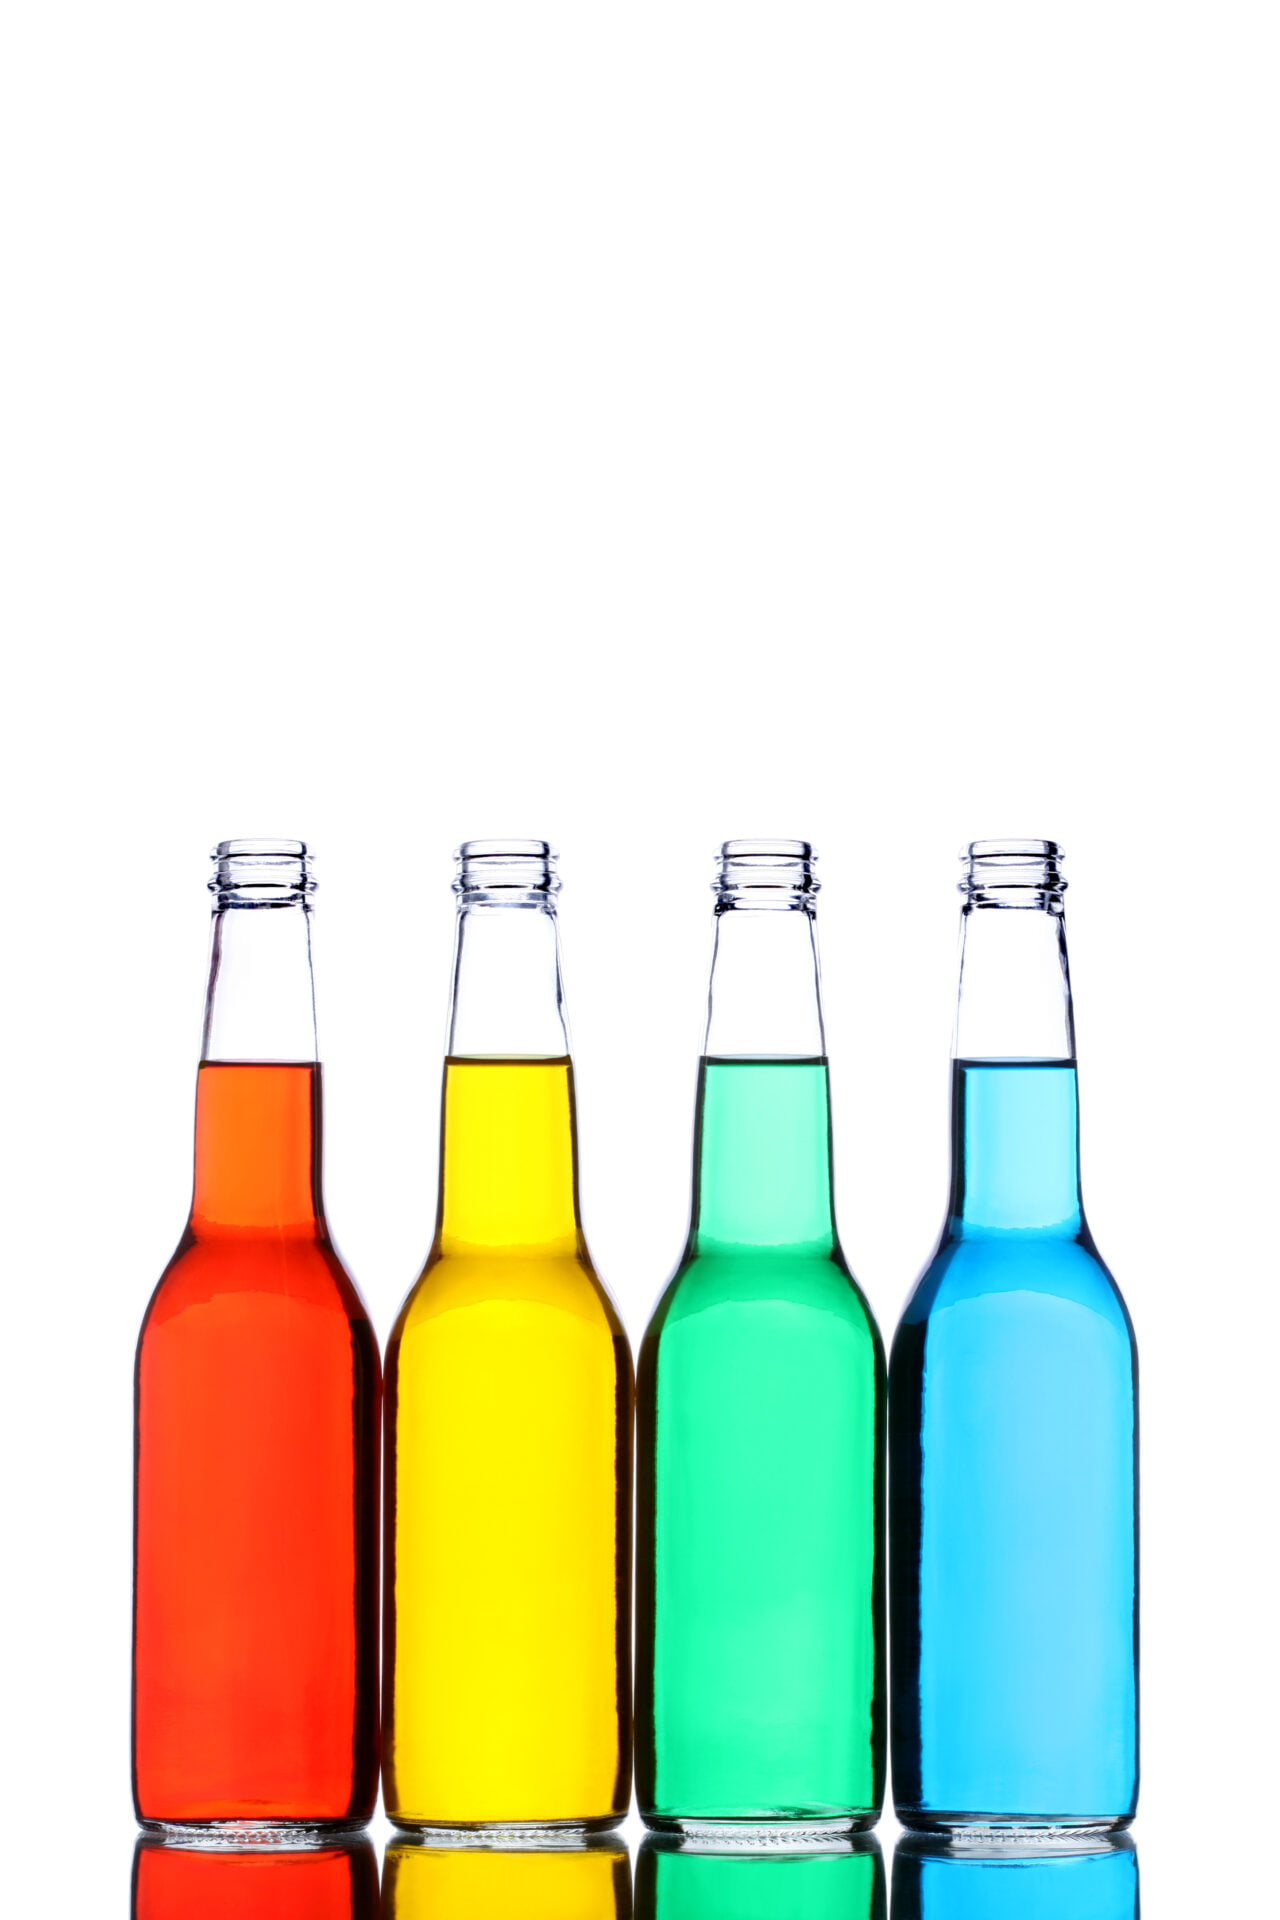 glass bottles with reflection and different colored liquids